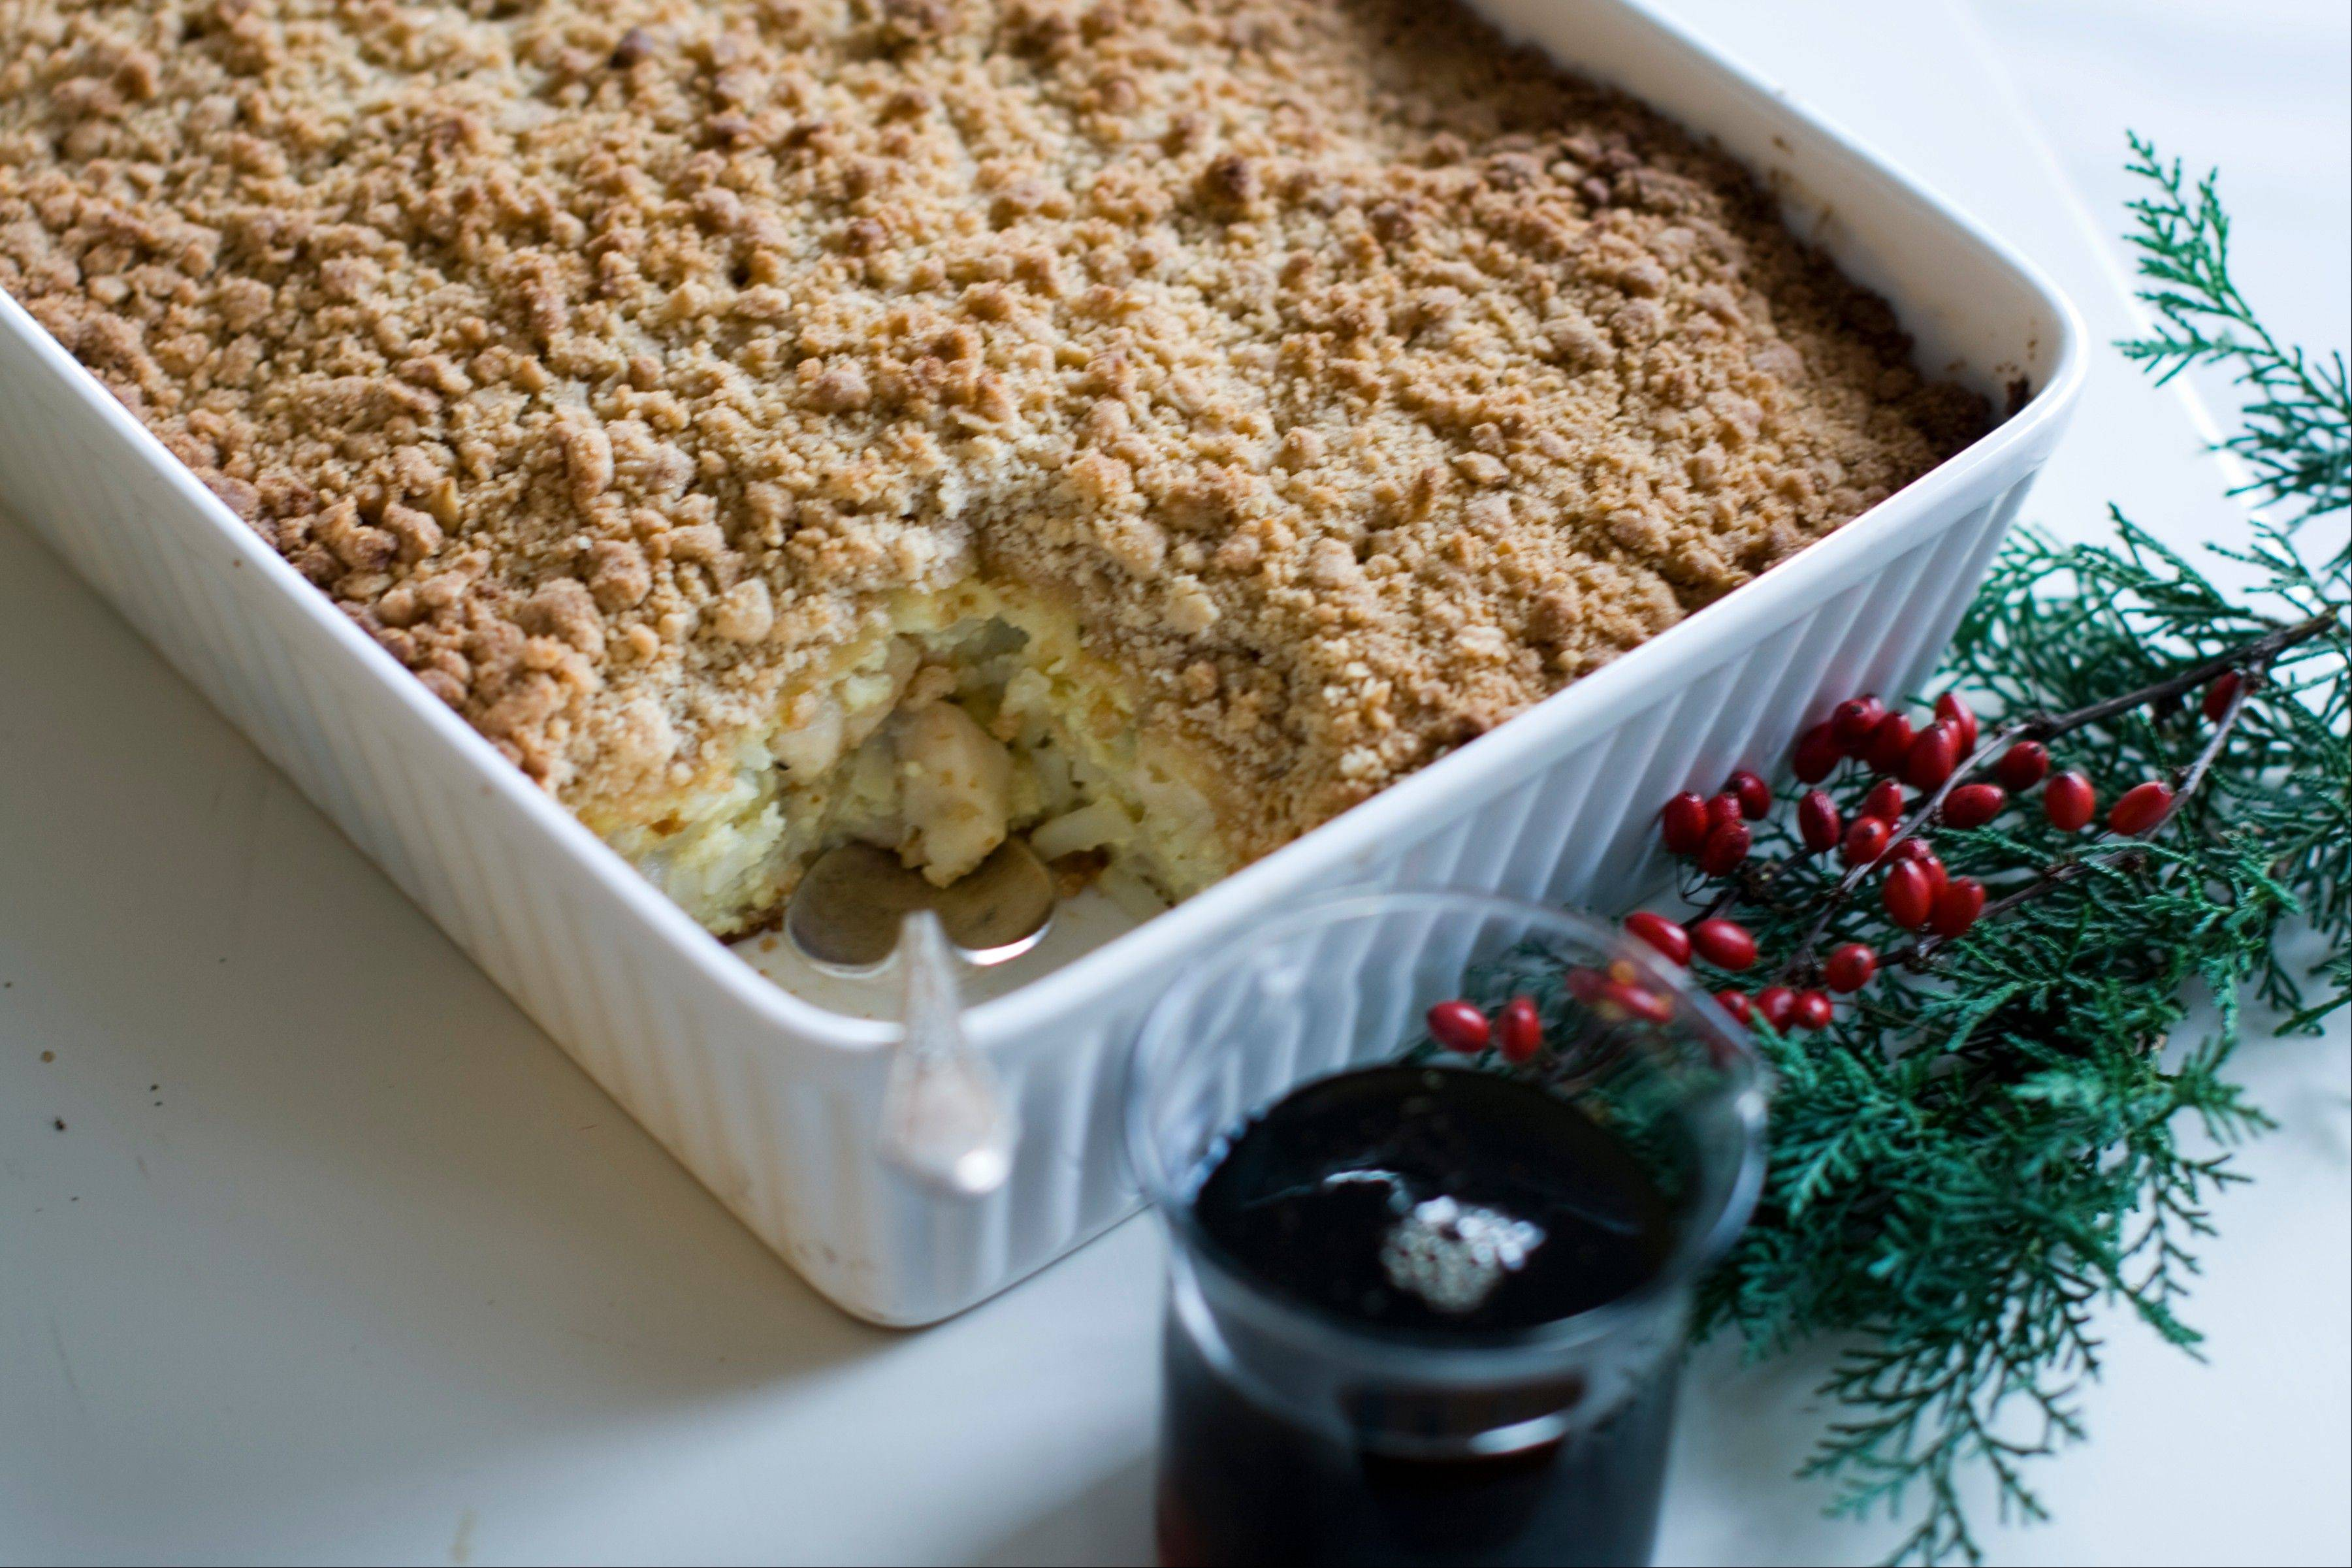 Spend Christmas morning under the tree, not at the stove by assembling this breakfast casserole the night before.